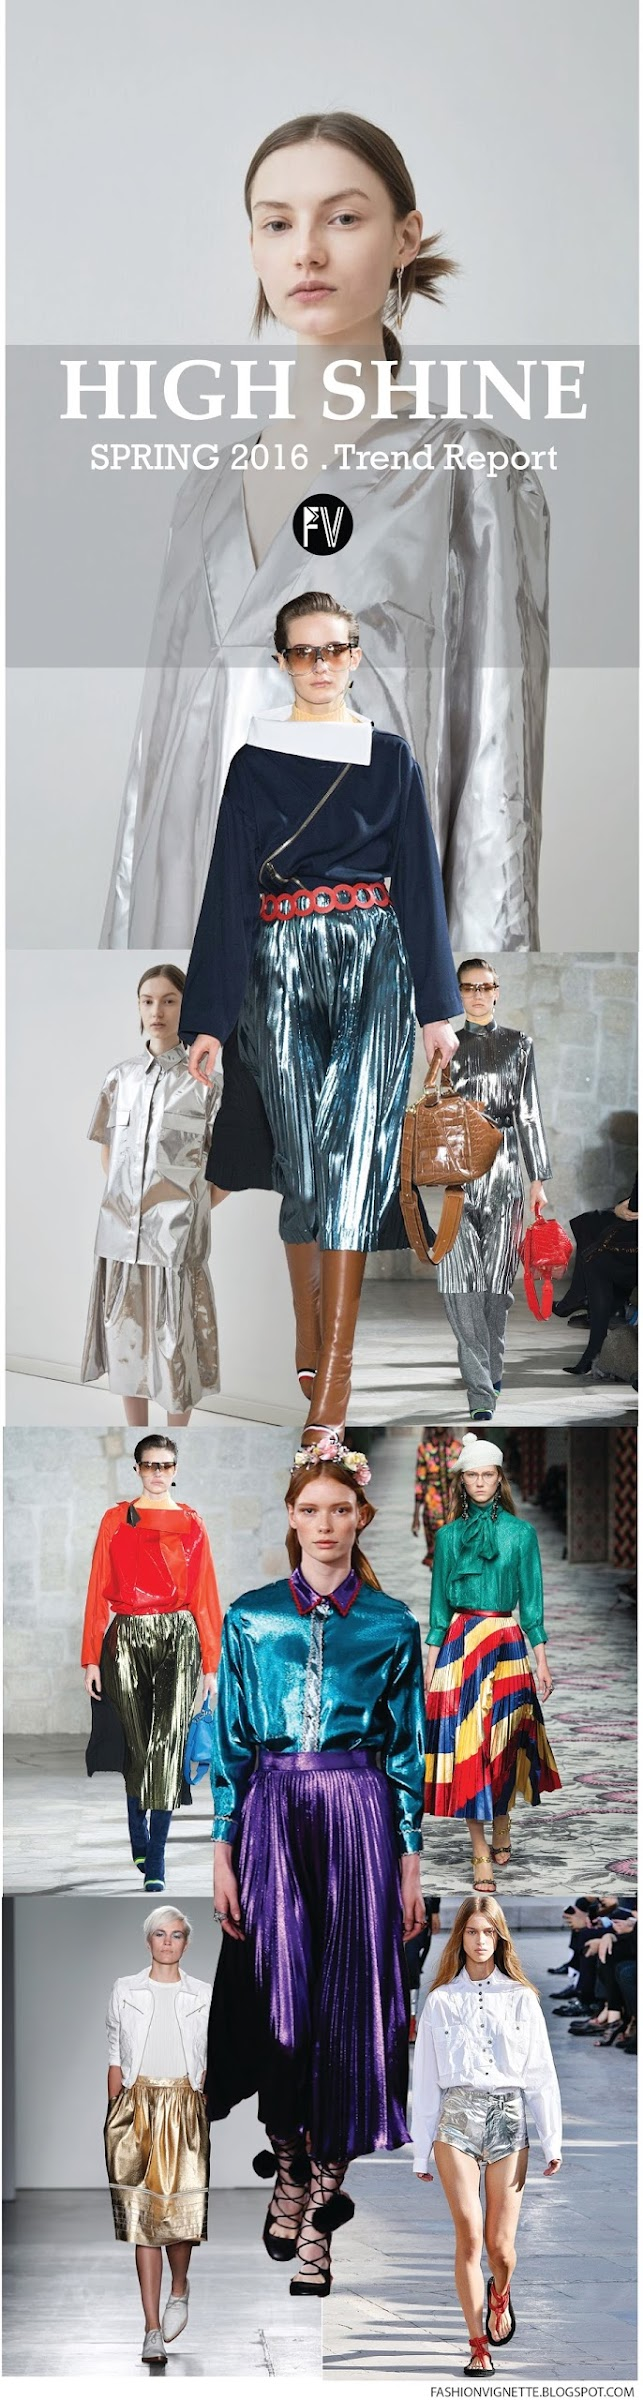 [ TREND REPORT ] HIGH SHINE